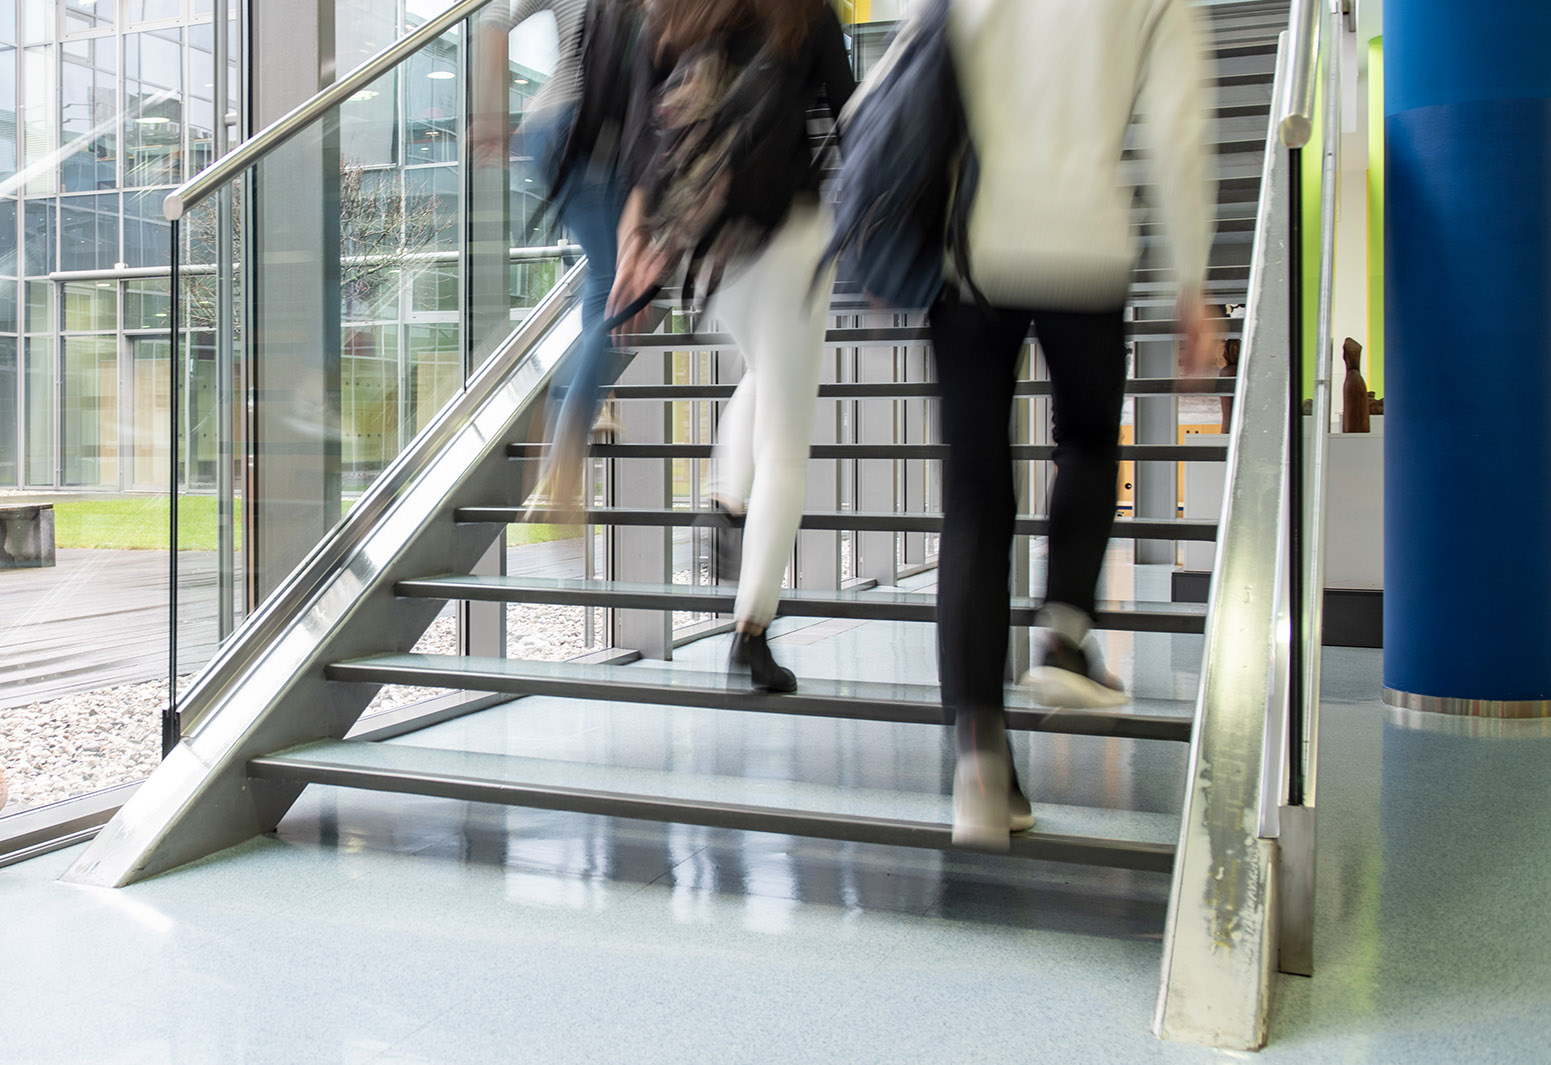 Close up of lower half of people walking up stairs in interior of building with tall windows in background